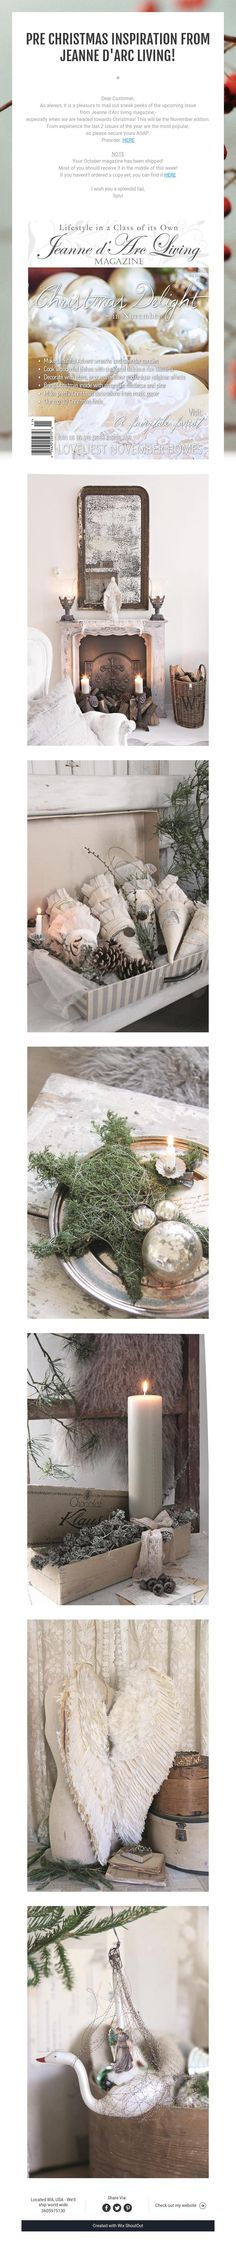 Pre Christmas Inspiration from Jeanne d'Arc Living!